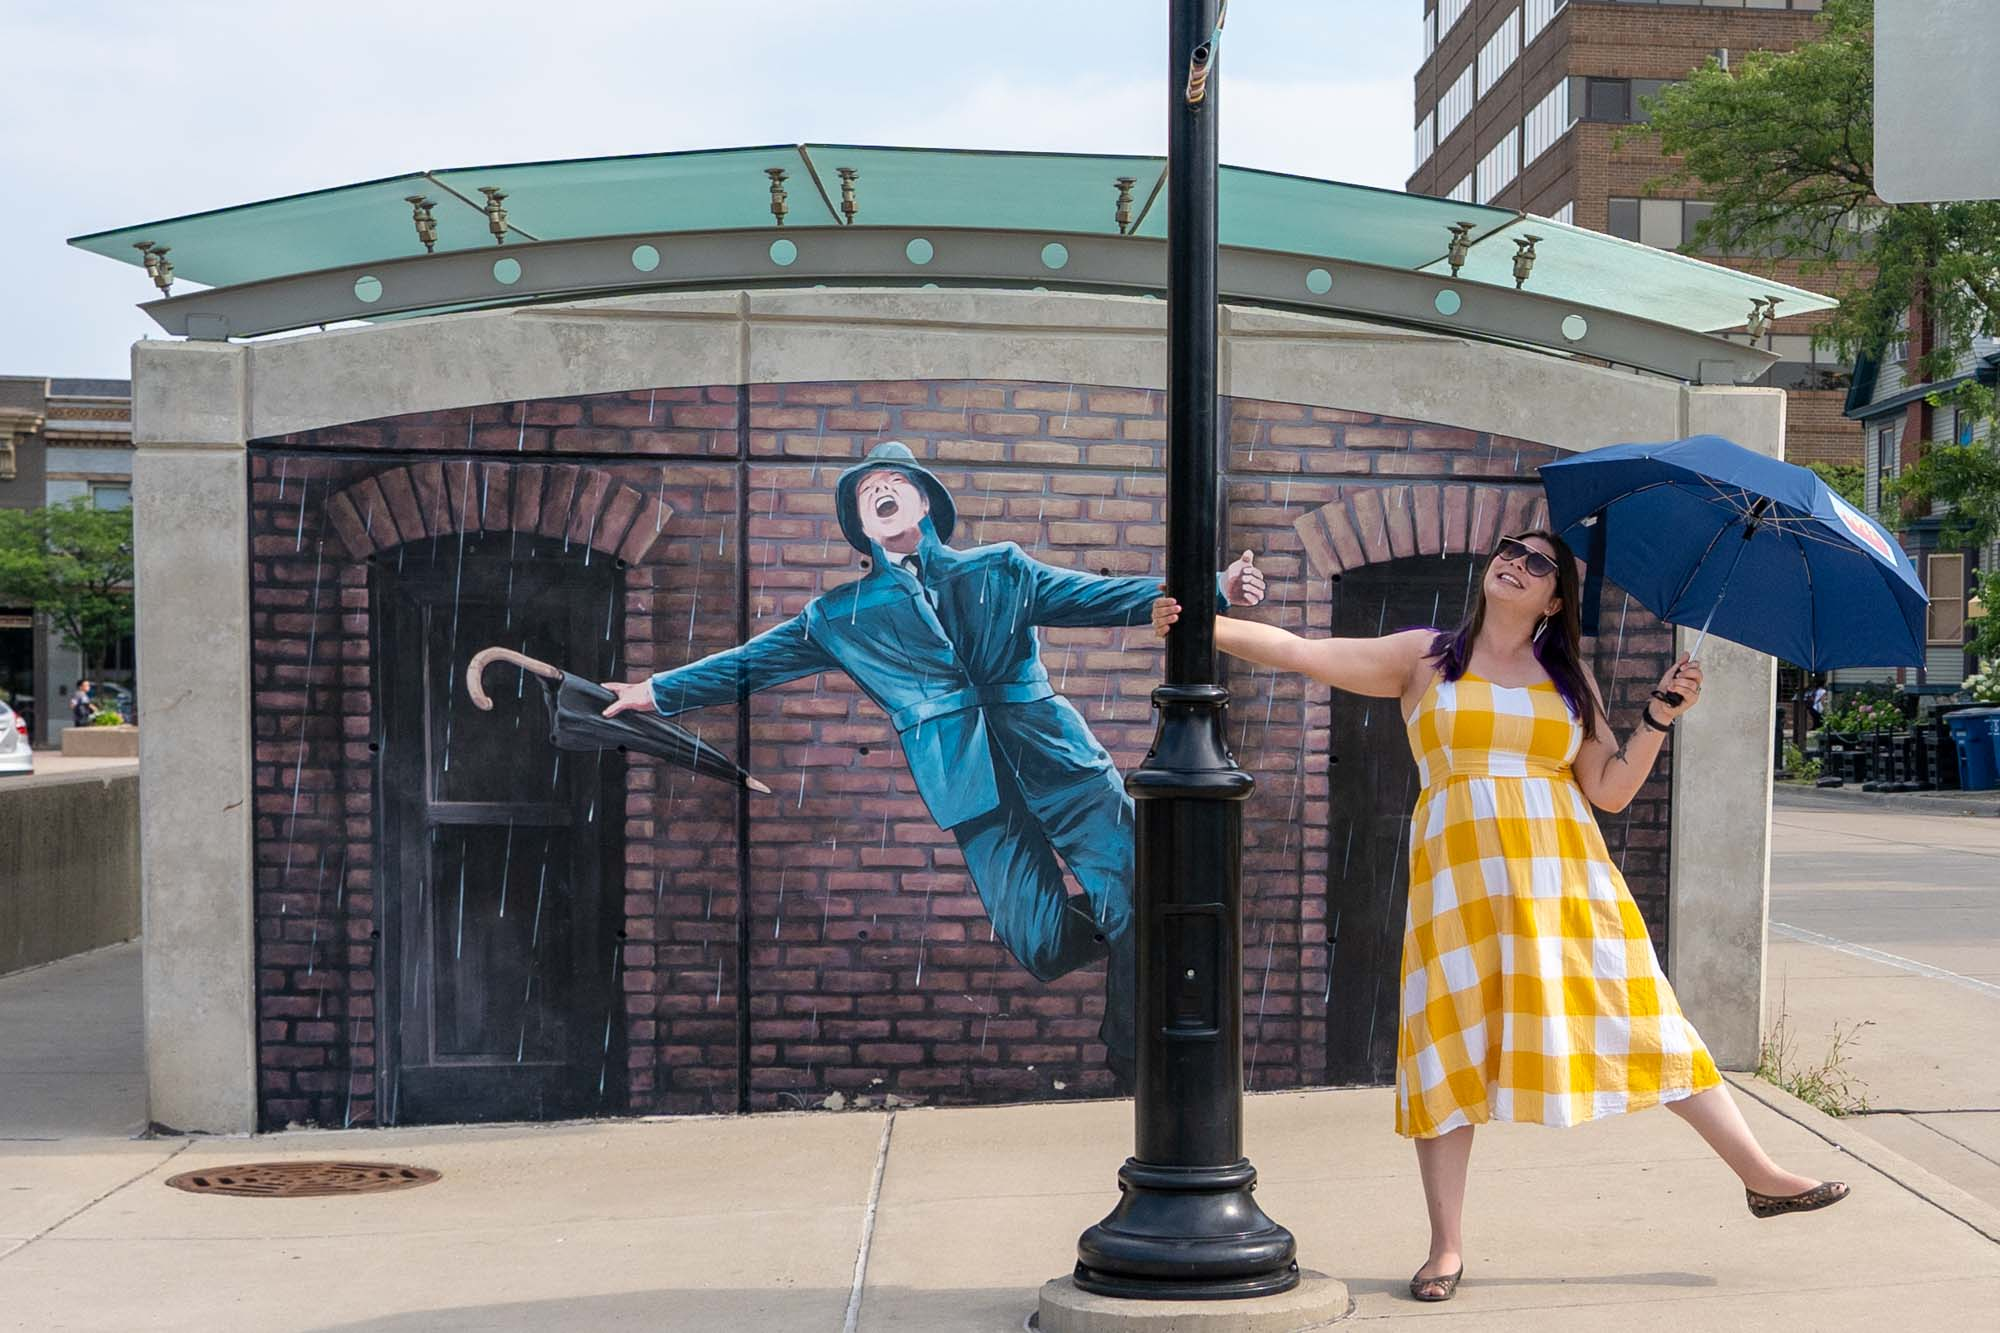 Girl with umbrella in front of the Singing in the Rain mural in Ann Arbor